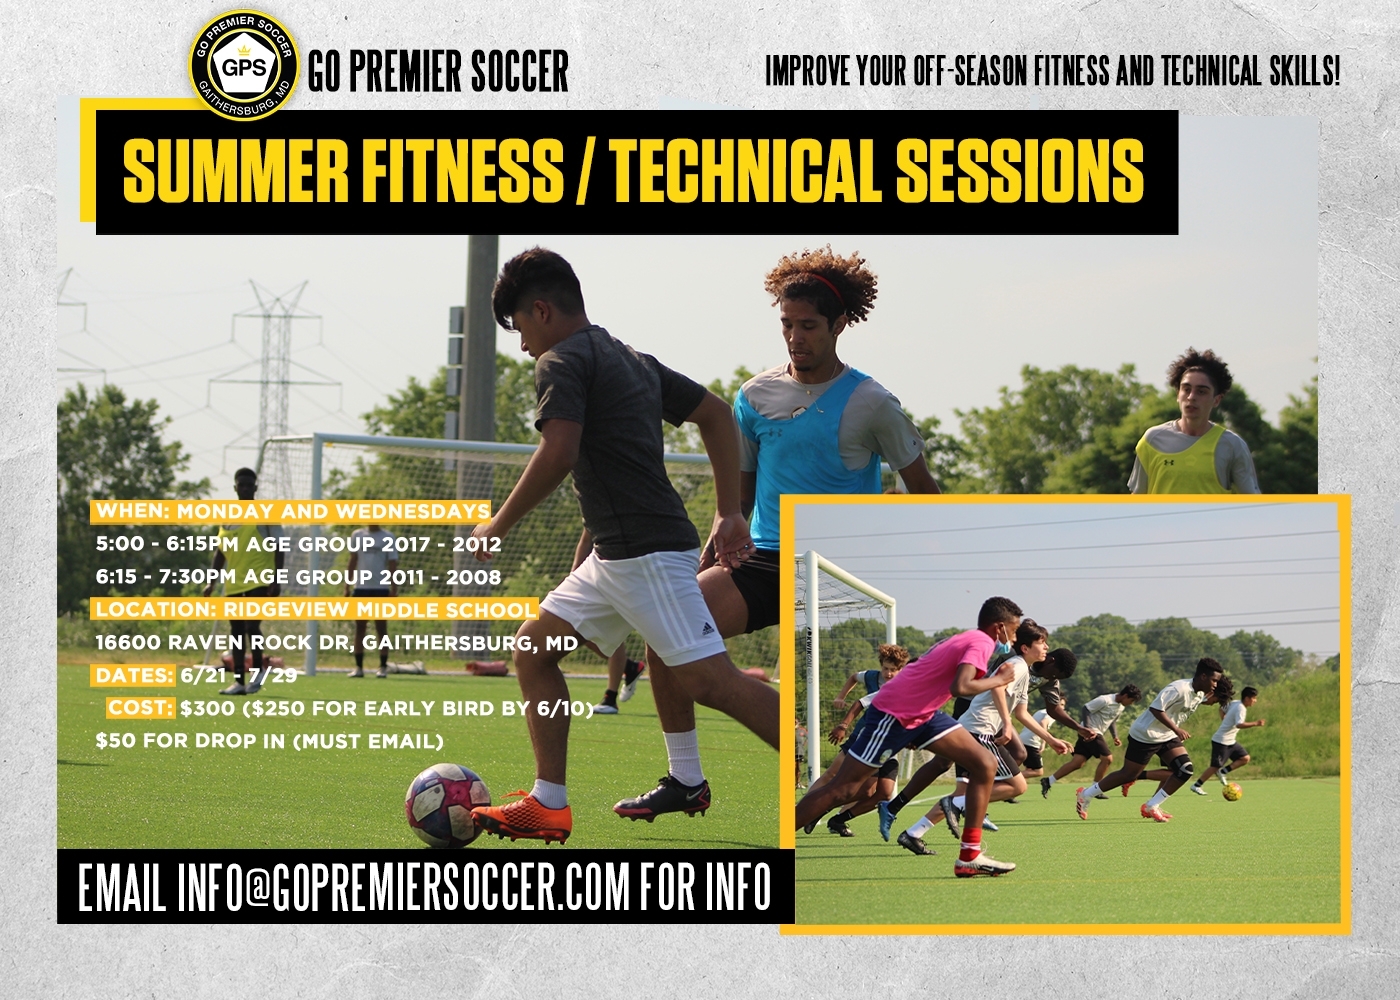 Summer Fitness & Technical Sessions